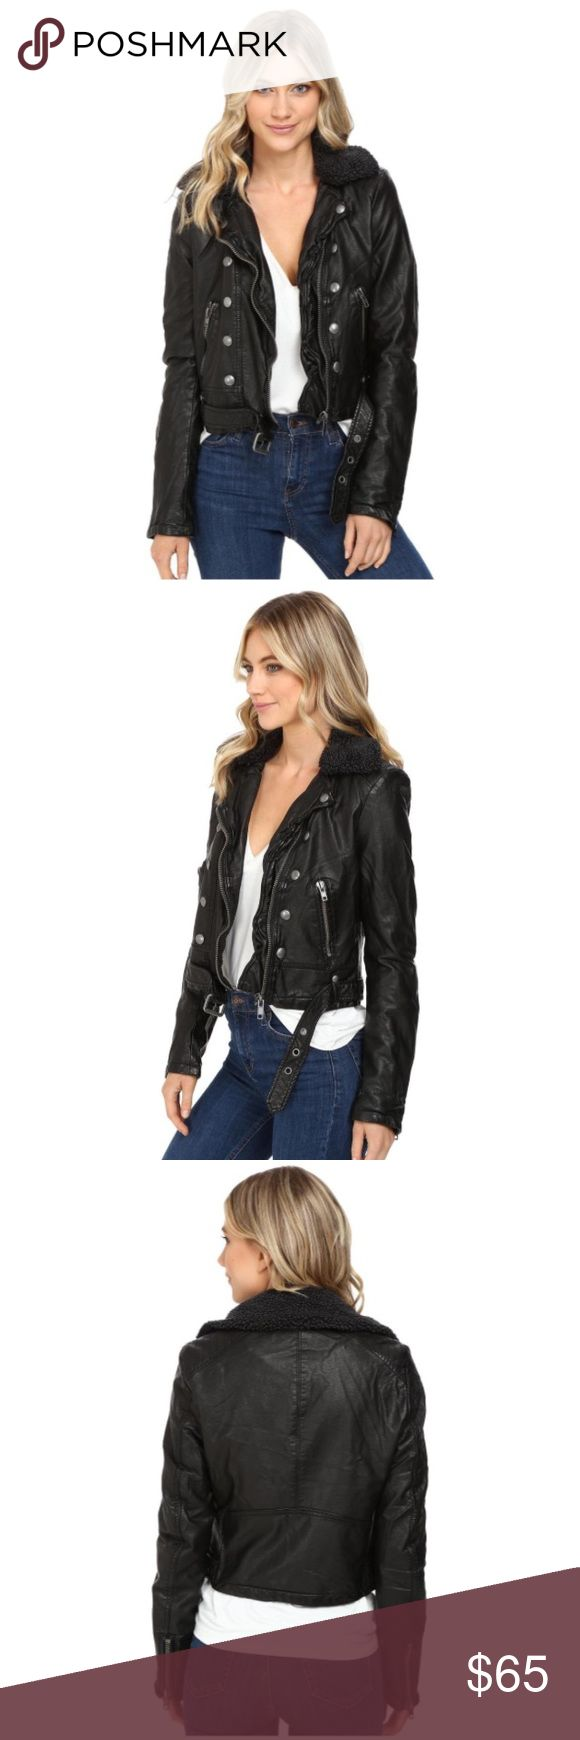 NWT leather free people jacket size small leather free people jacket with black whool collar. never been worn and still has tags (I have the same one in a medium that I wear all the time and love it). make an offer or ask questions below!! Free People Jackets & Coats